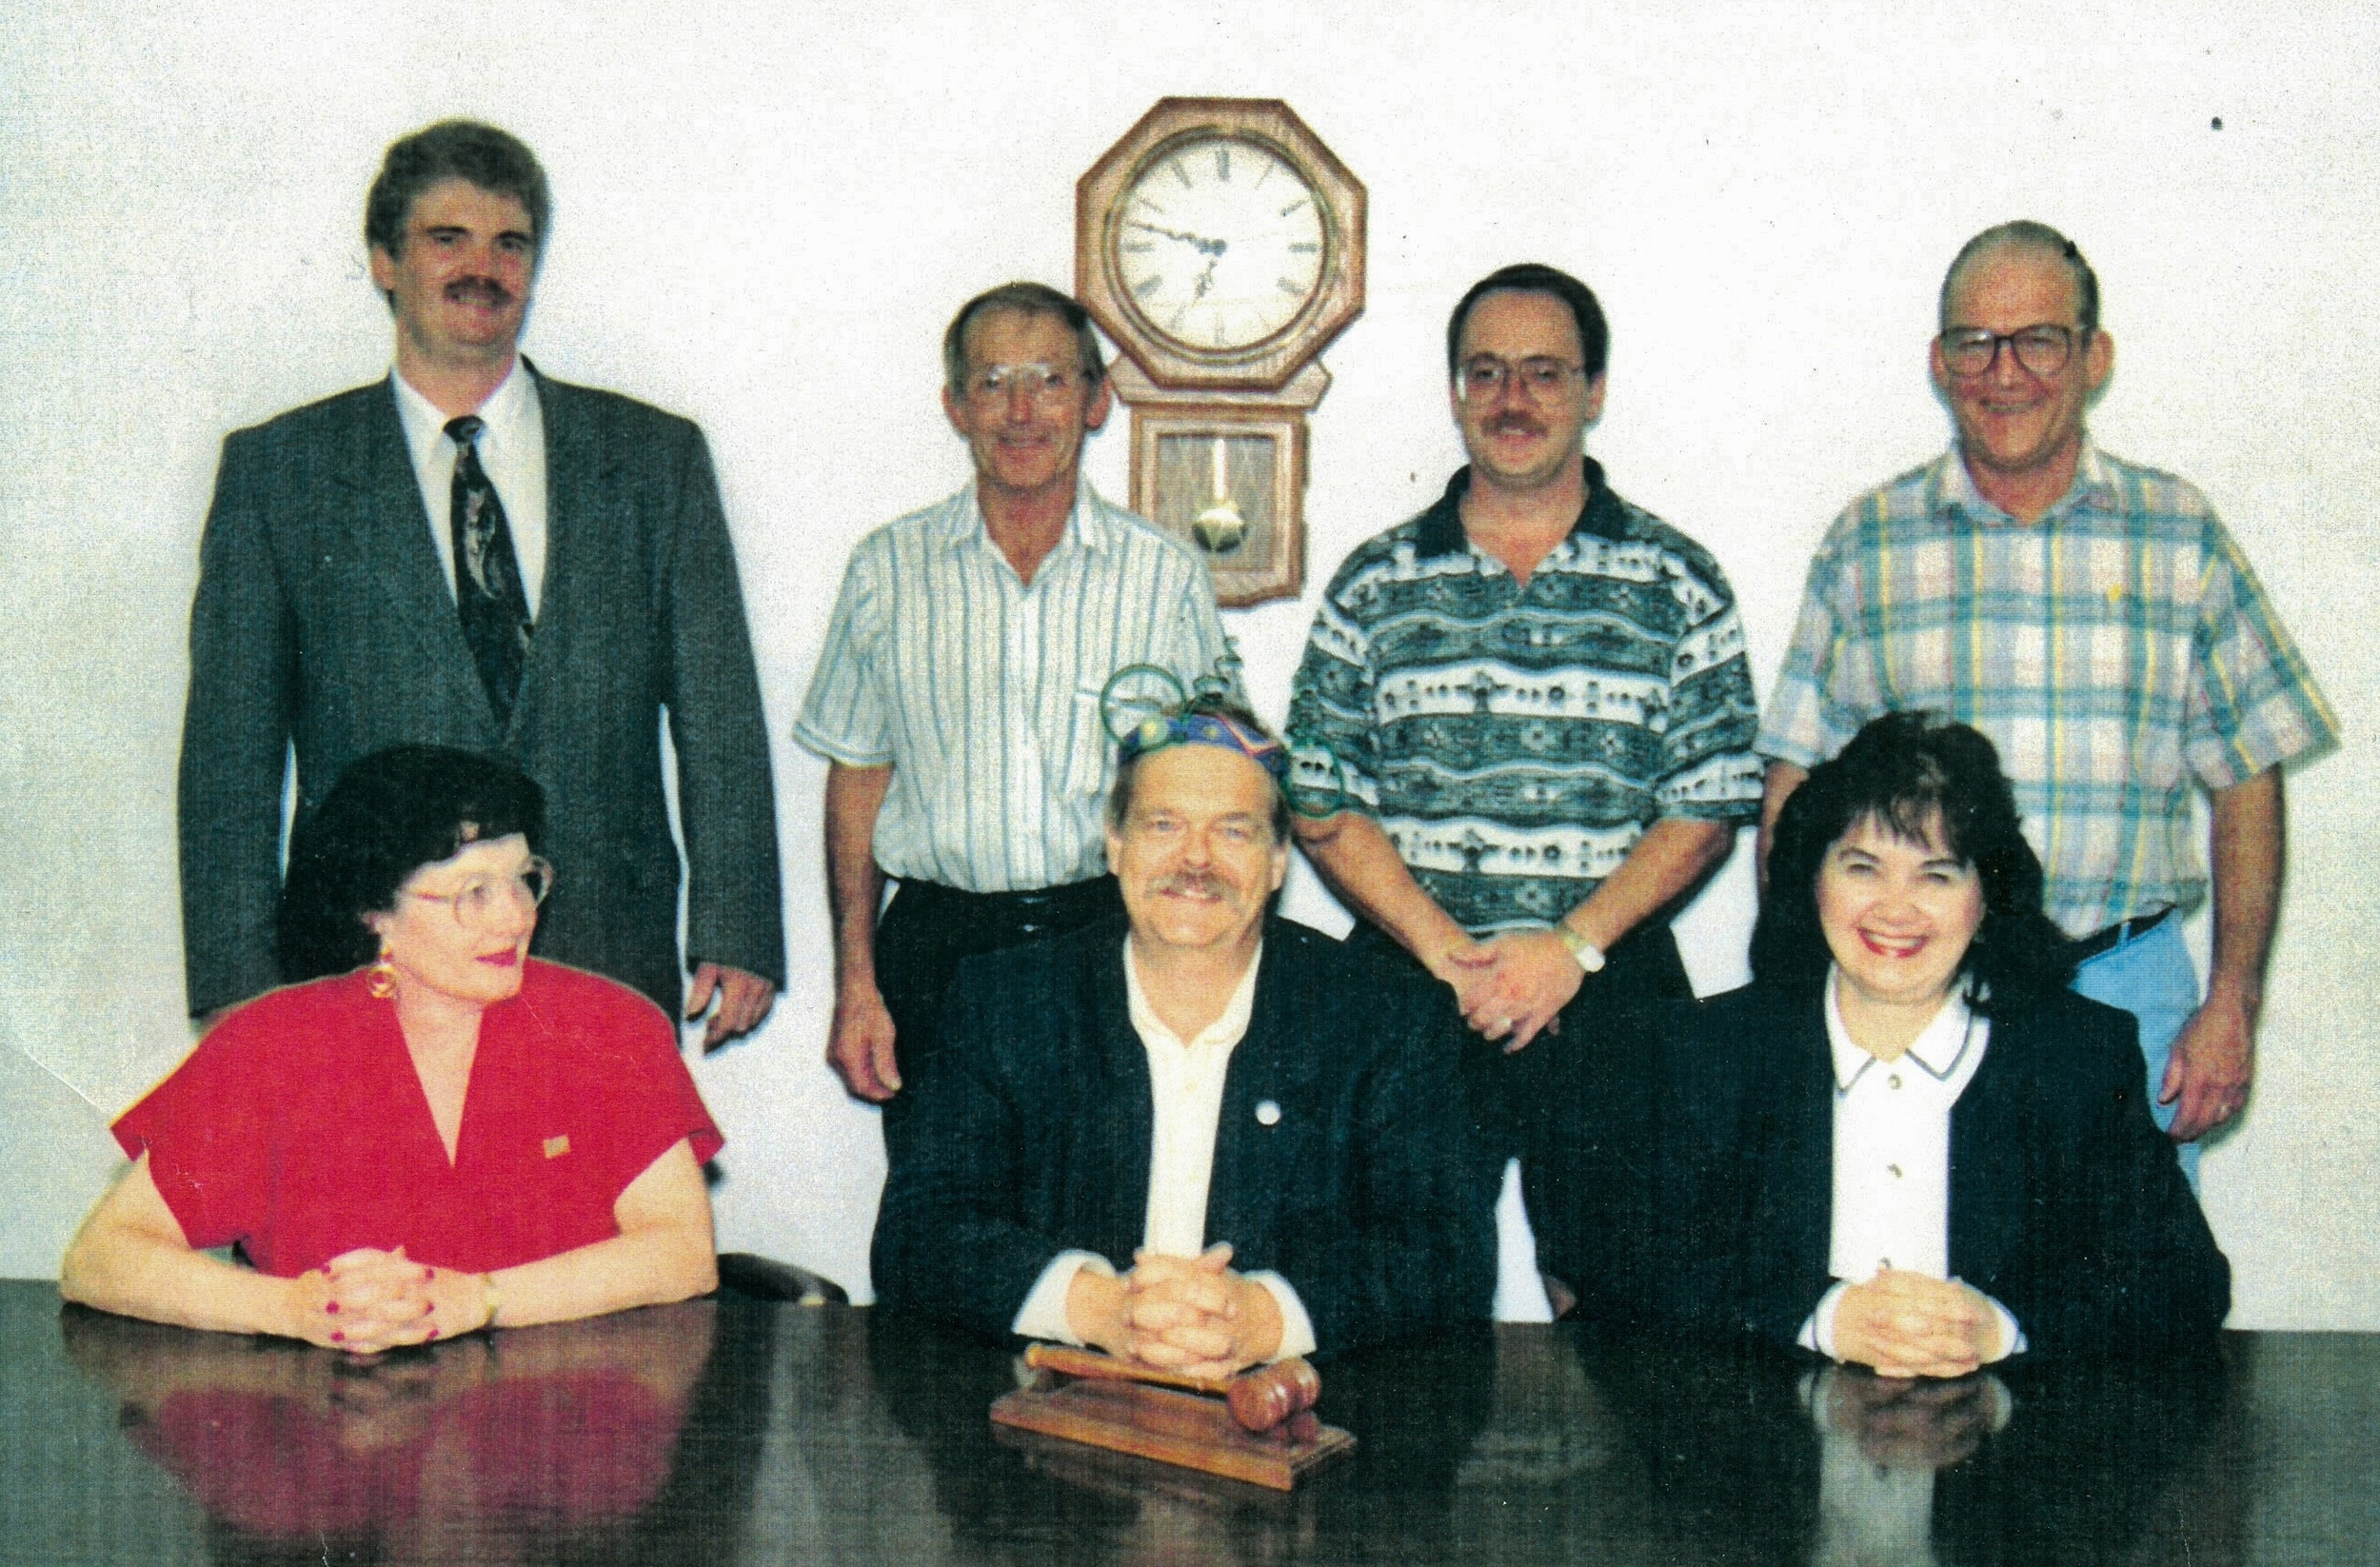 Village Council - Morris Mccaul, Garnie Brownson, Bob Kent, Russ Mitchell, Wilma (Brady) Bush, Reeve Andre Philpot, Clerk Carol Church